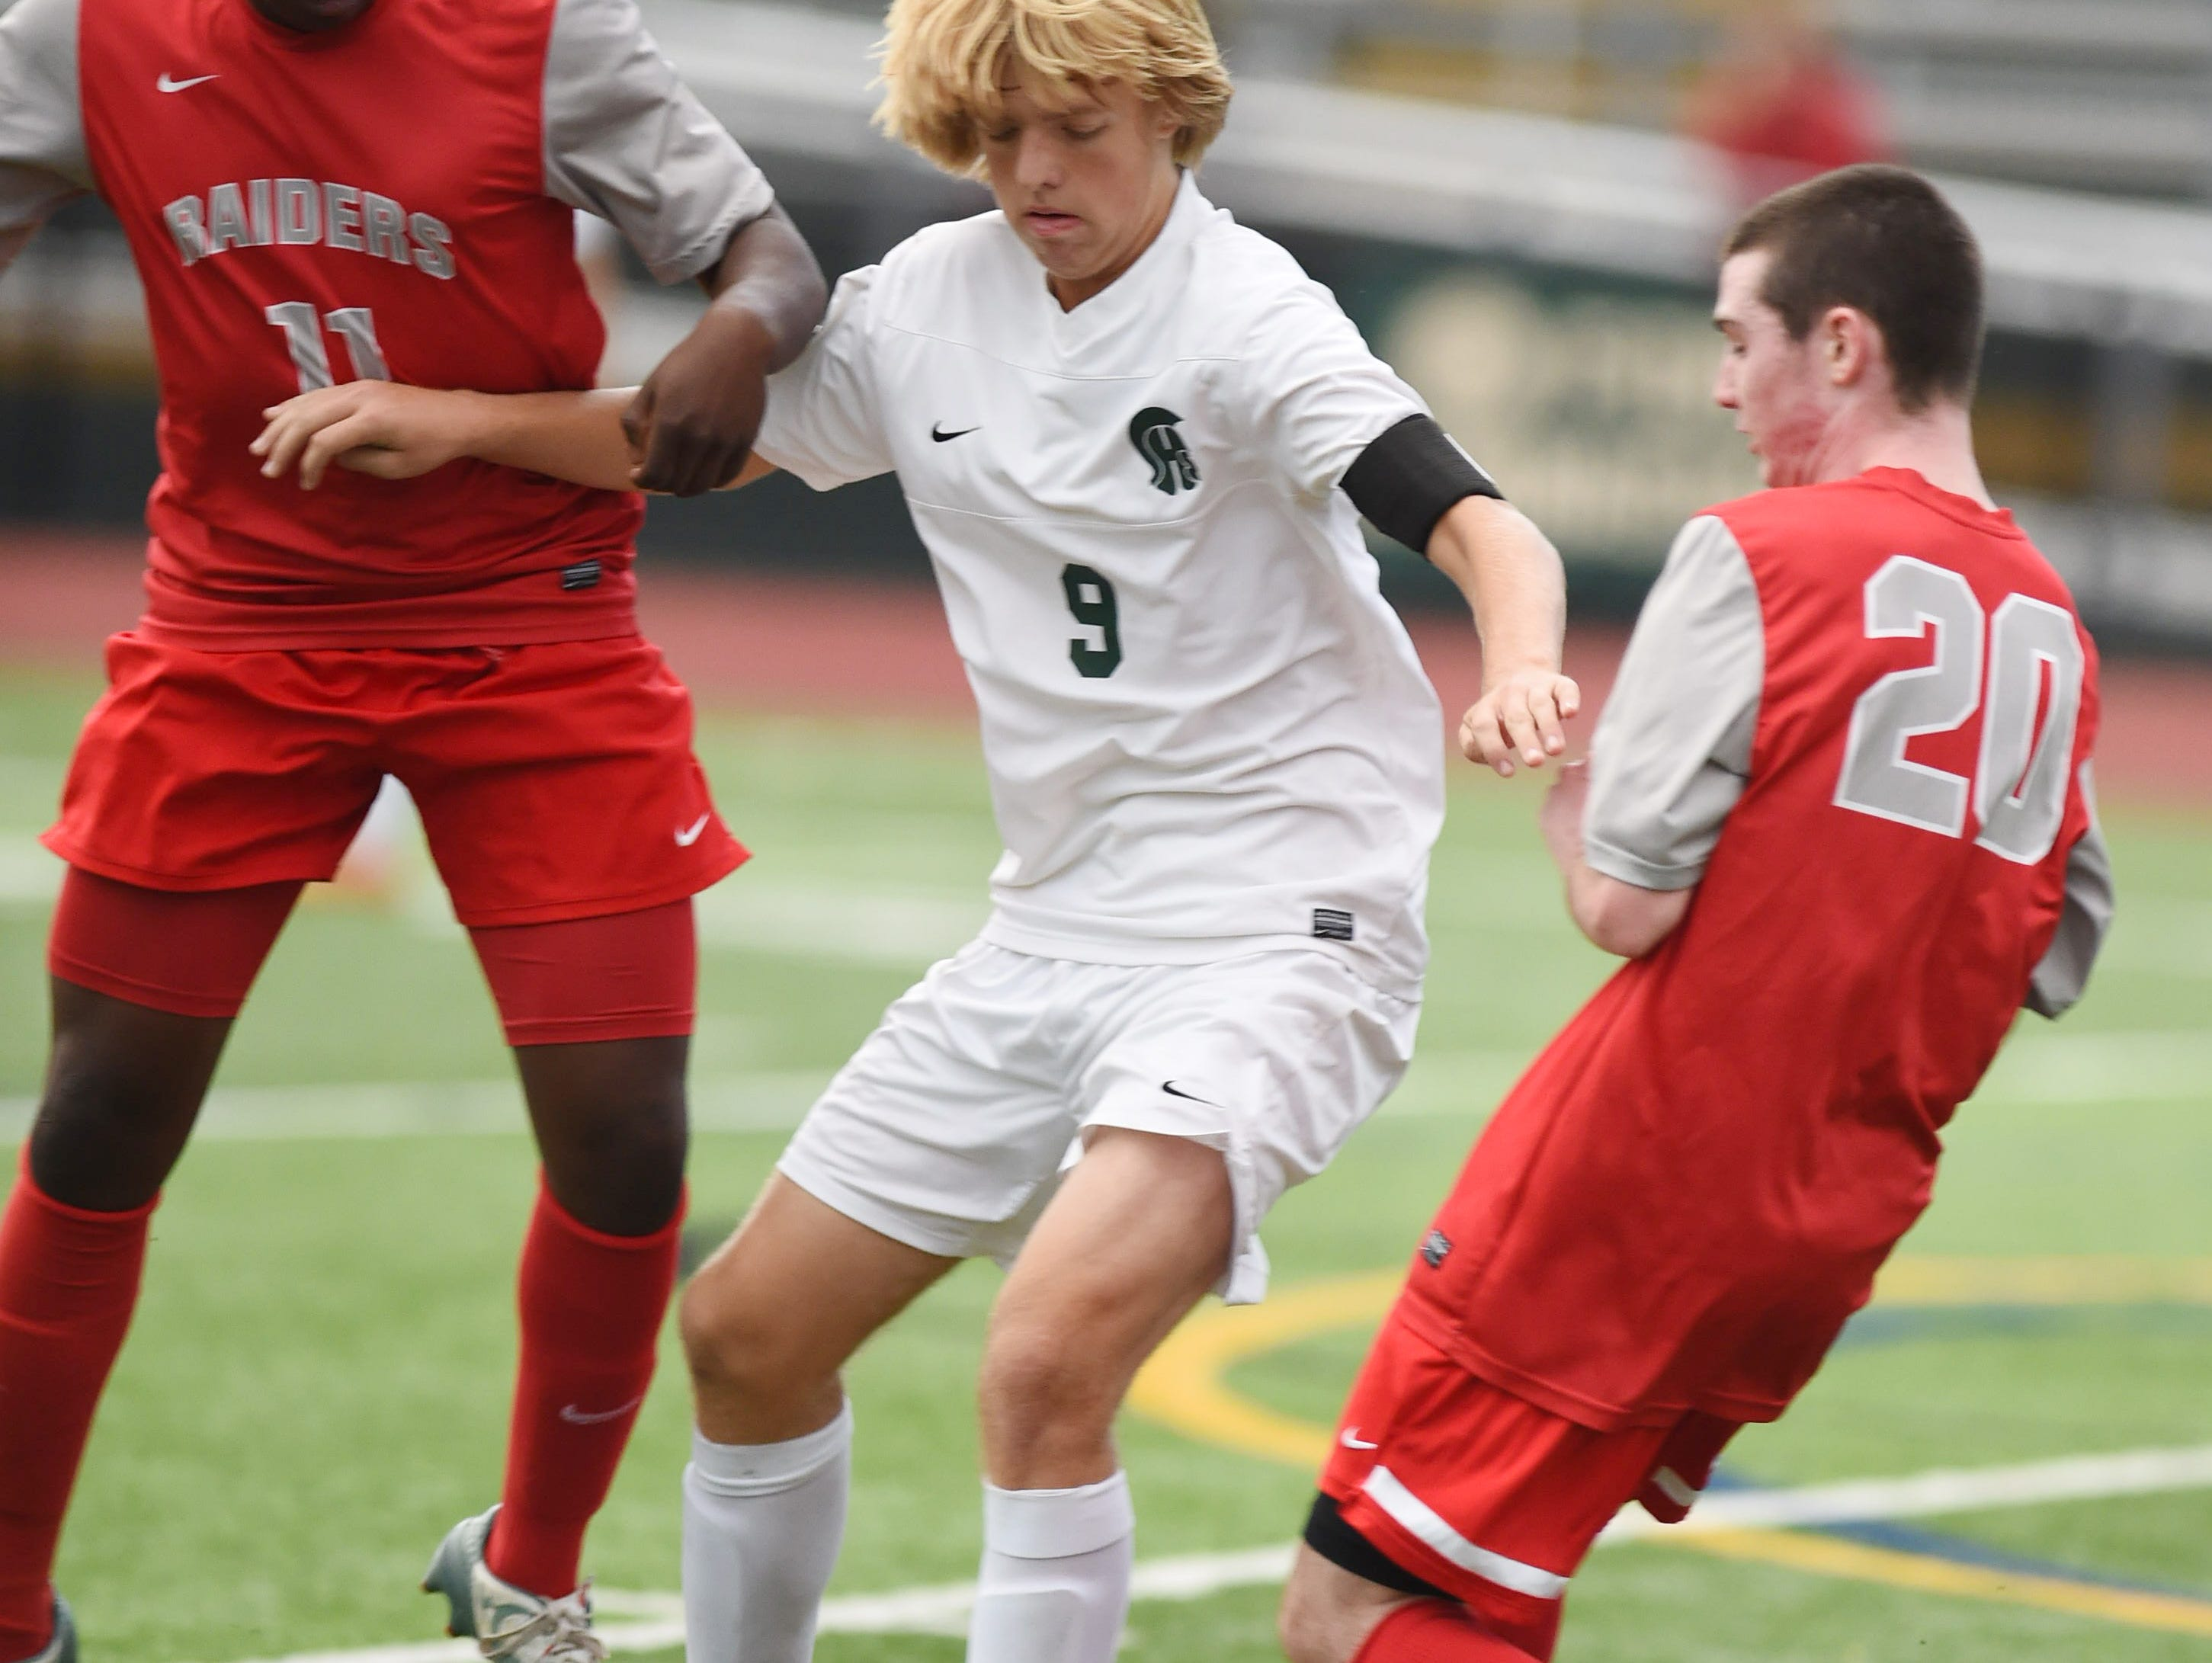 Spackenkill's Jake Kaufman, center, attempts to fend off Red Hook's, from left, Jeff Kiluba and Liam Jantzen on Oct. 22, 2015 in Staatsburg.